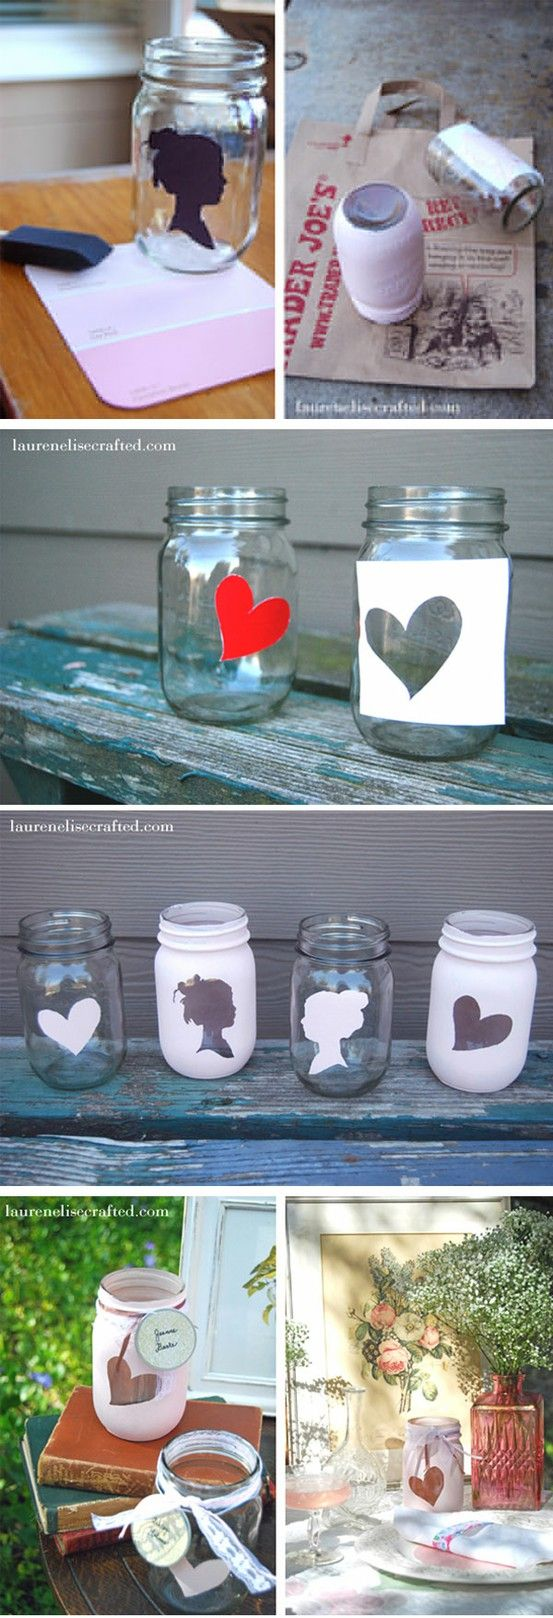 Ium finding so many things to do with empty jars these are